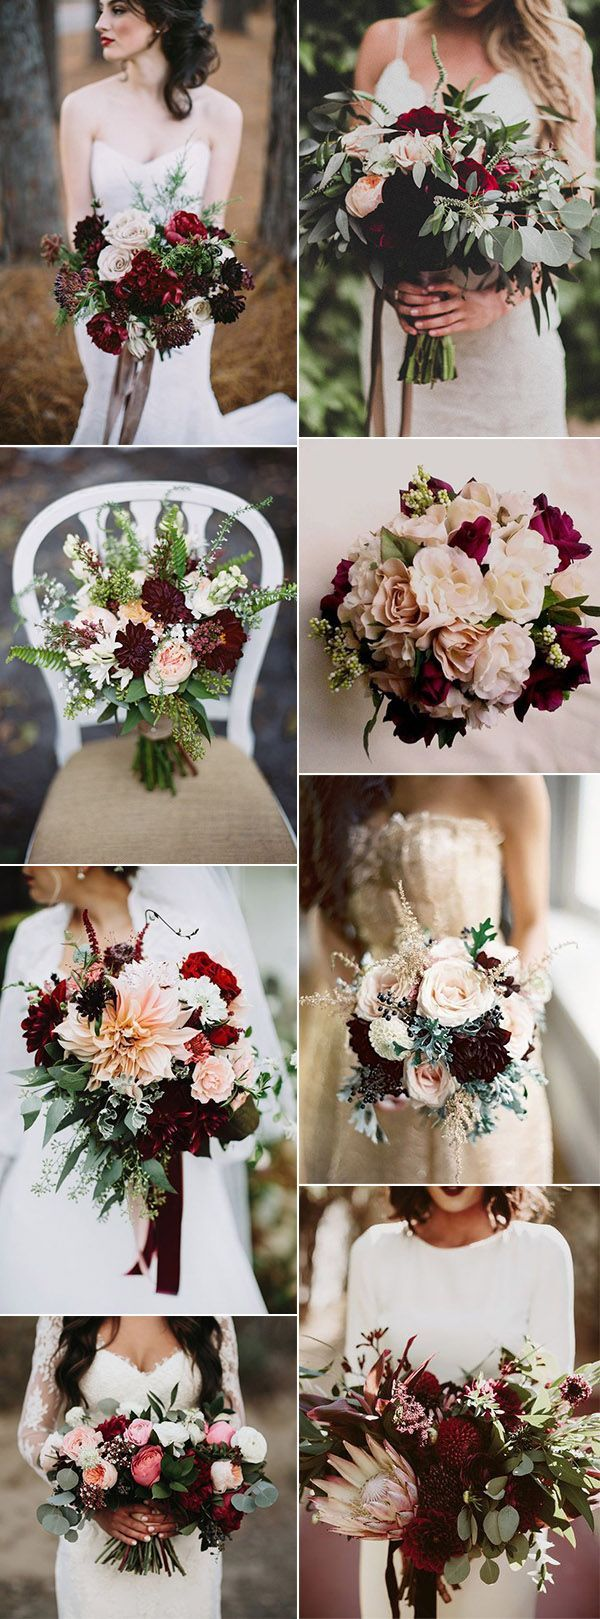 25 best burgundy bouquet ideas on pinterest burgundy wedding flowers burgundy flowers and. Black Bedroom Furniture Sets. Home Design Ideas